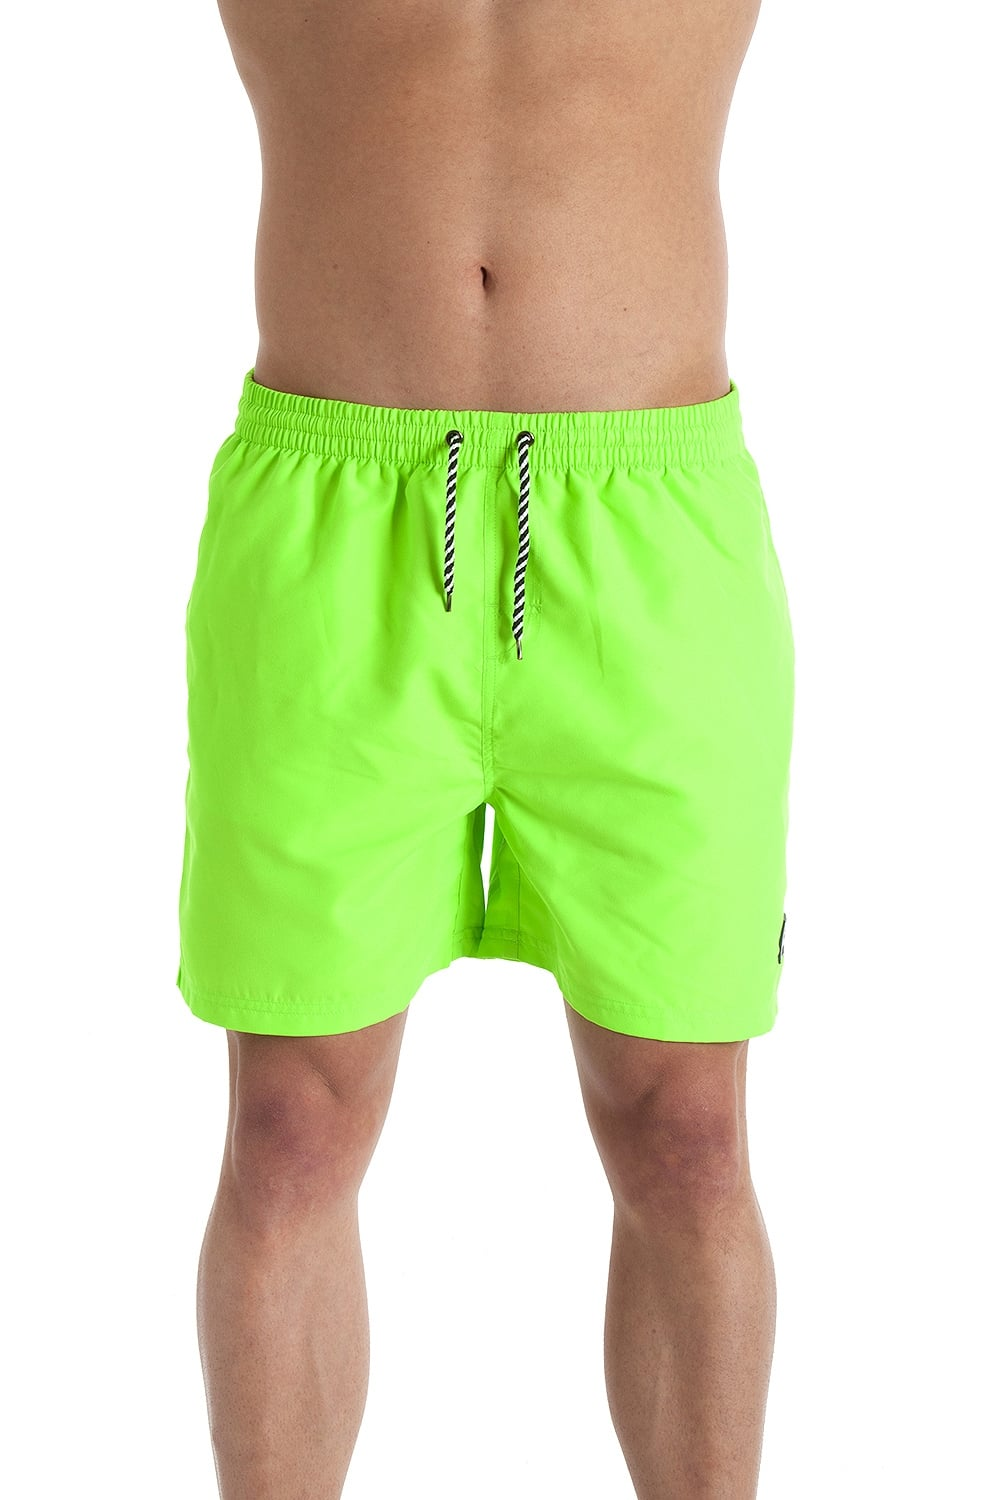 Find lime green shorts men at ShopStyle. Shop the latest collection of lime green shorts men from the most popular stores - all in one place.